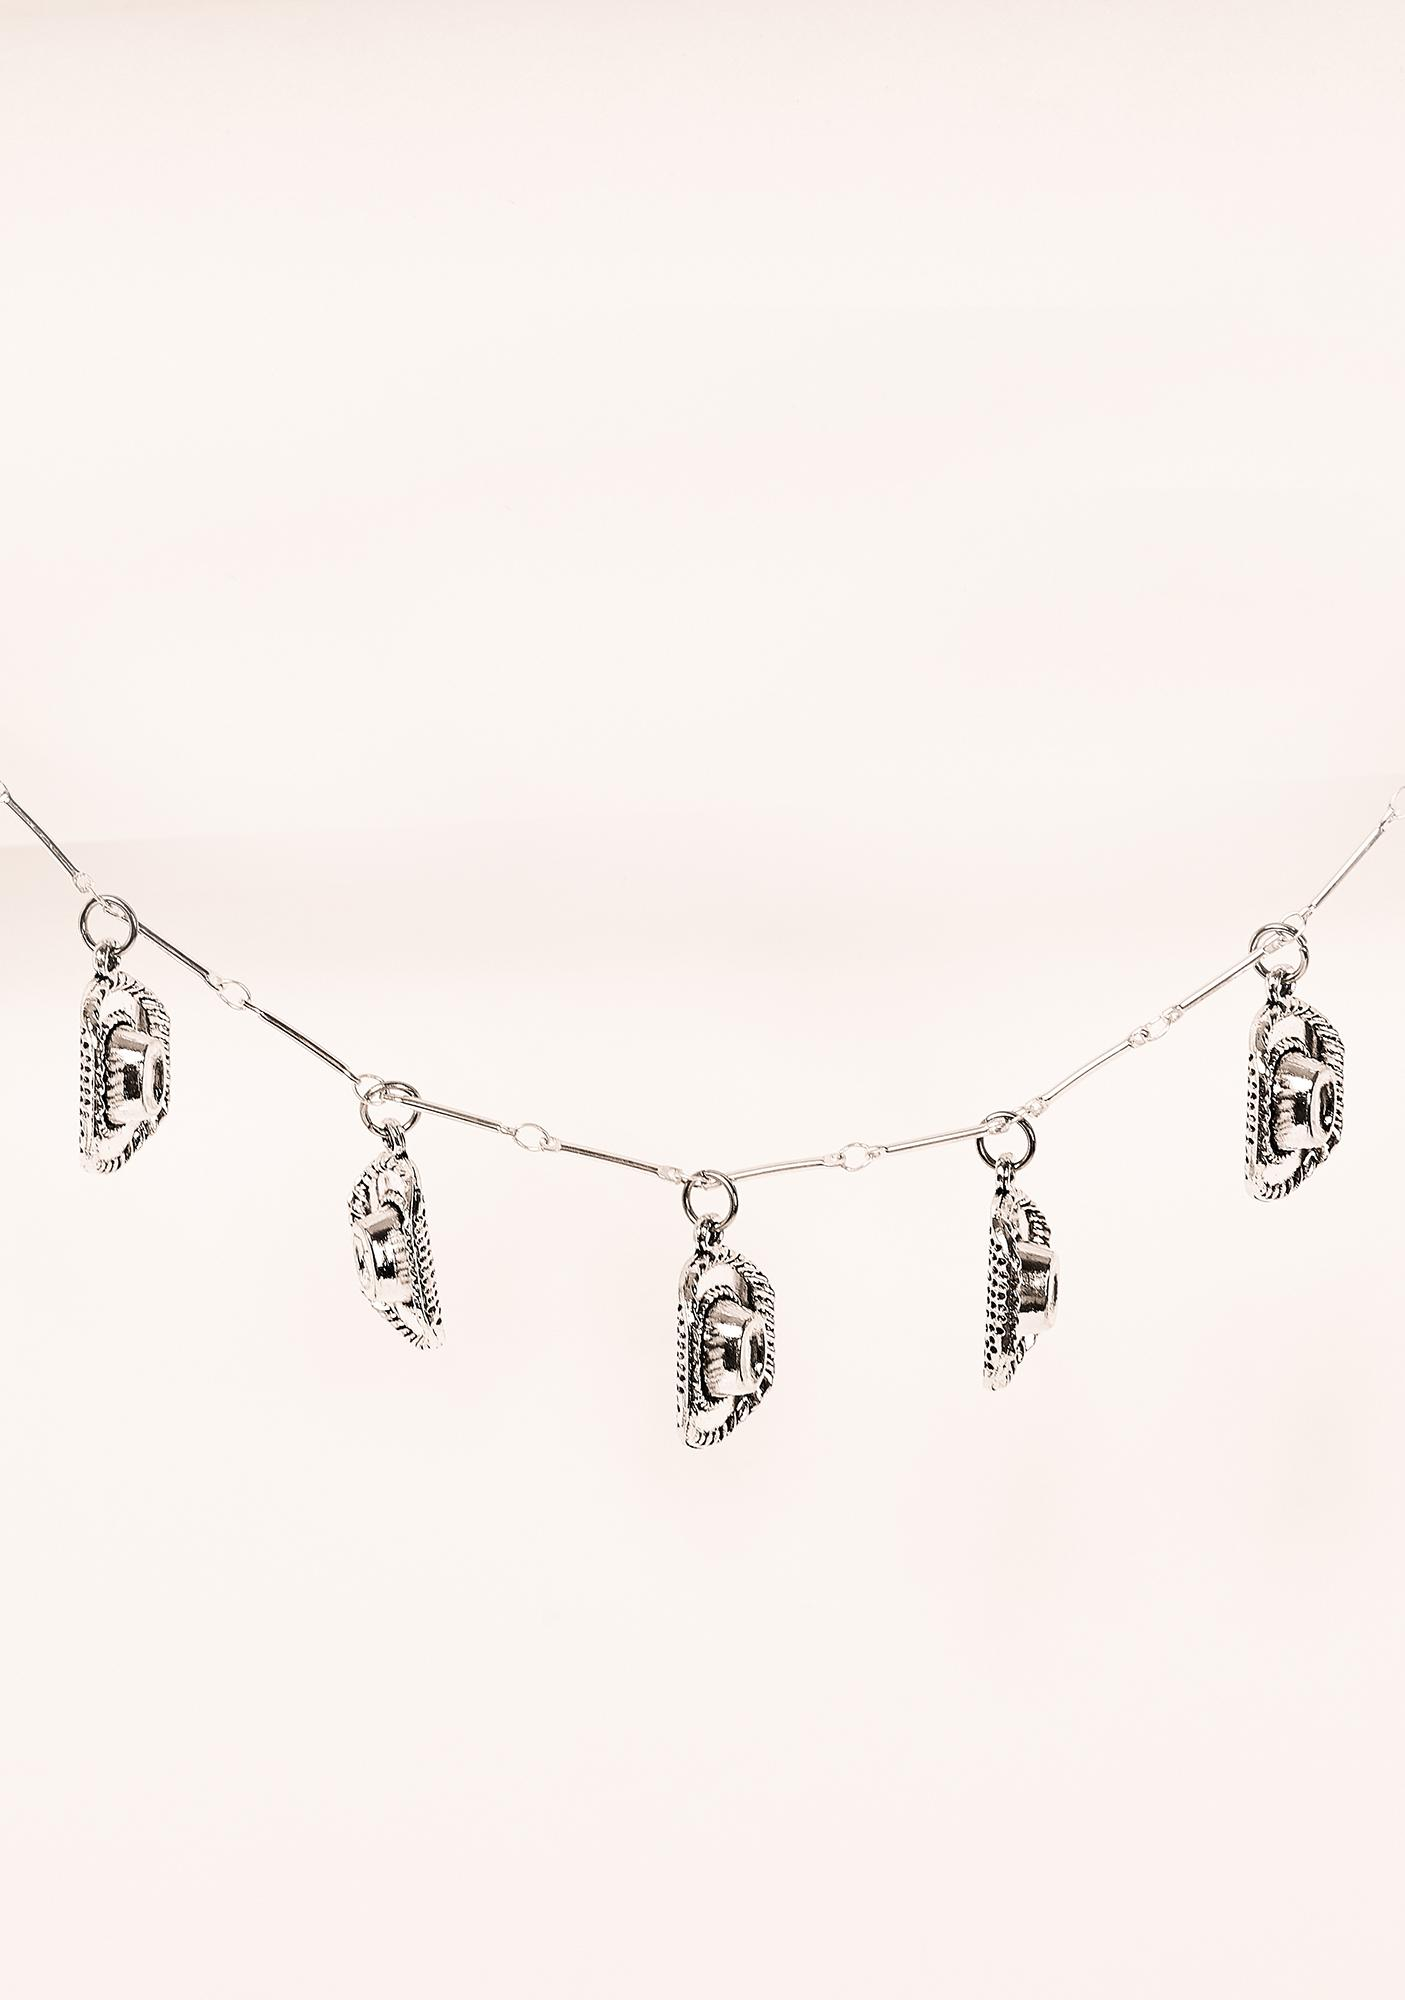 Desert Moon Silver Cowboy Hat Charm Necklace